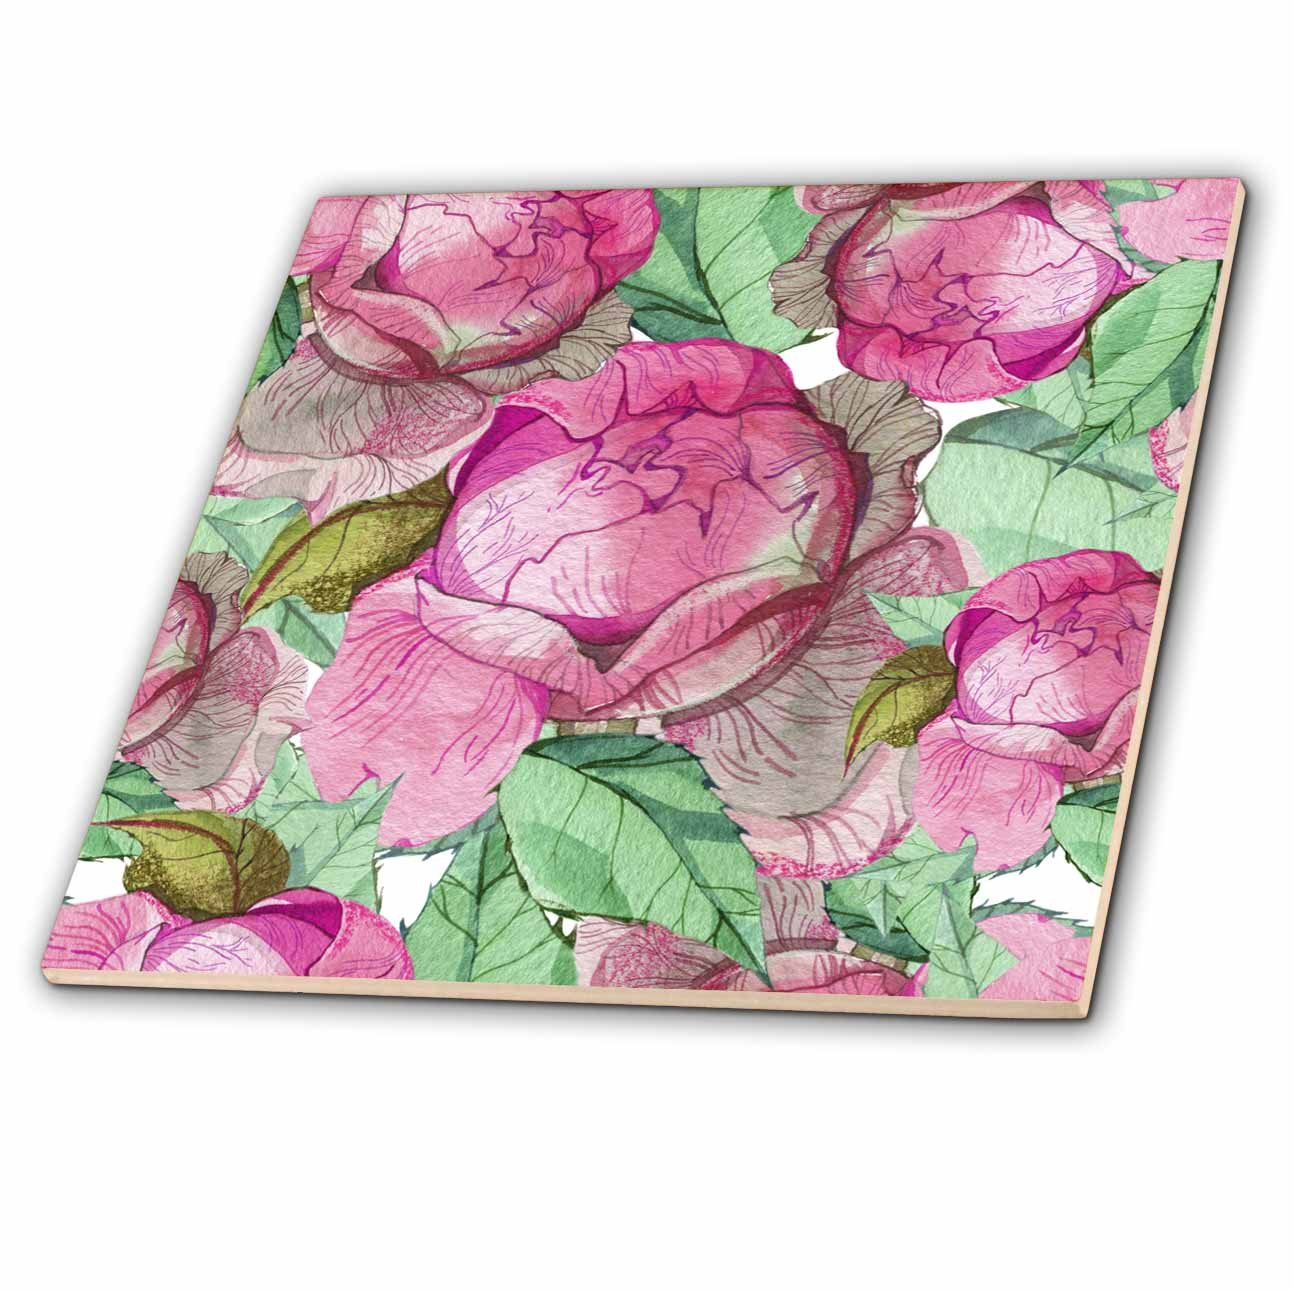 Amazon Com 3drose Anne Marie Baugh Patterns Chic Pink And Green Watercolor Large Floral Pattern 8 Inch Ceramic Tile Ct 283441 3 Home Kitchen